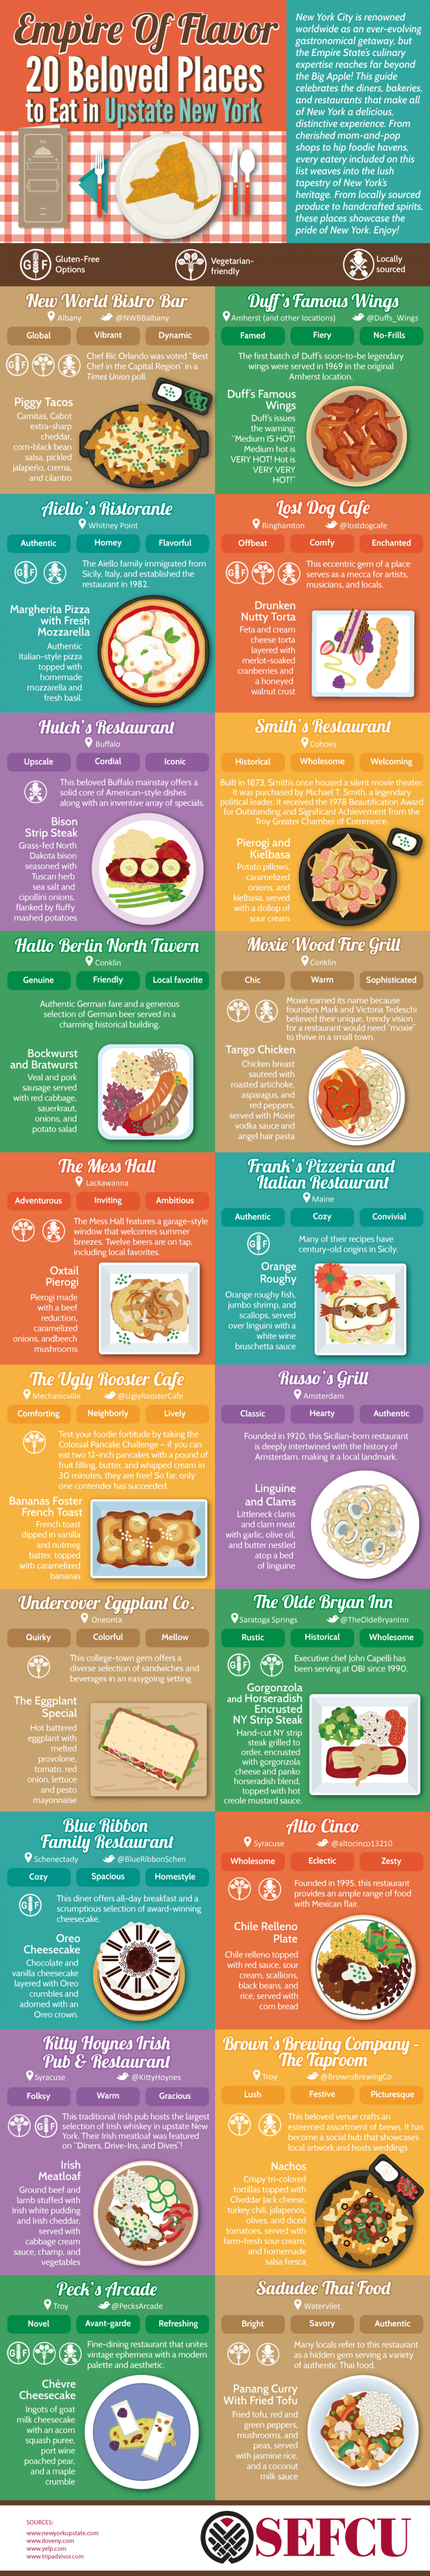 Empire of Flavor: 20 Beloved Places to Eat in Upstate New York  Infographic